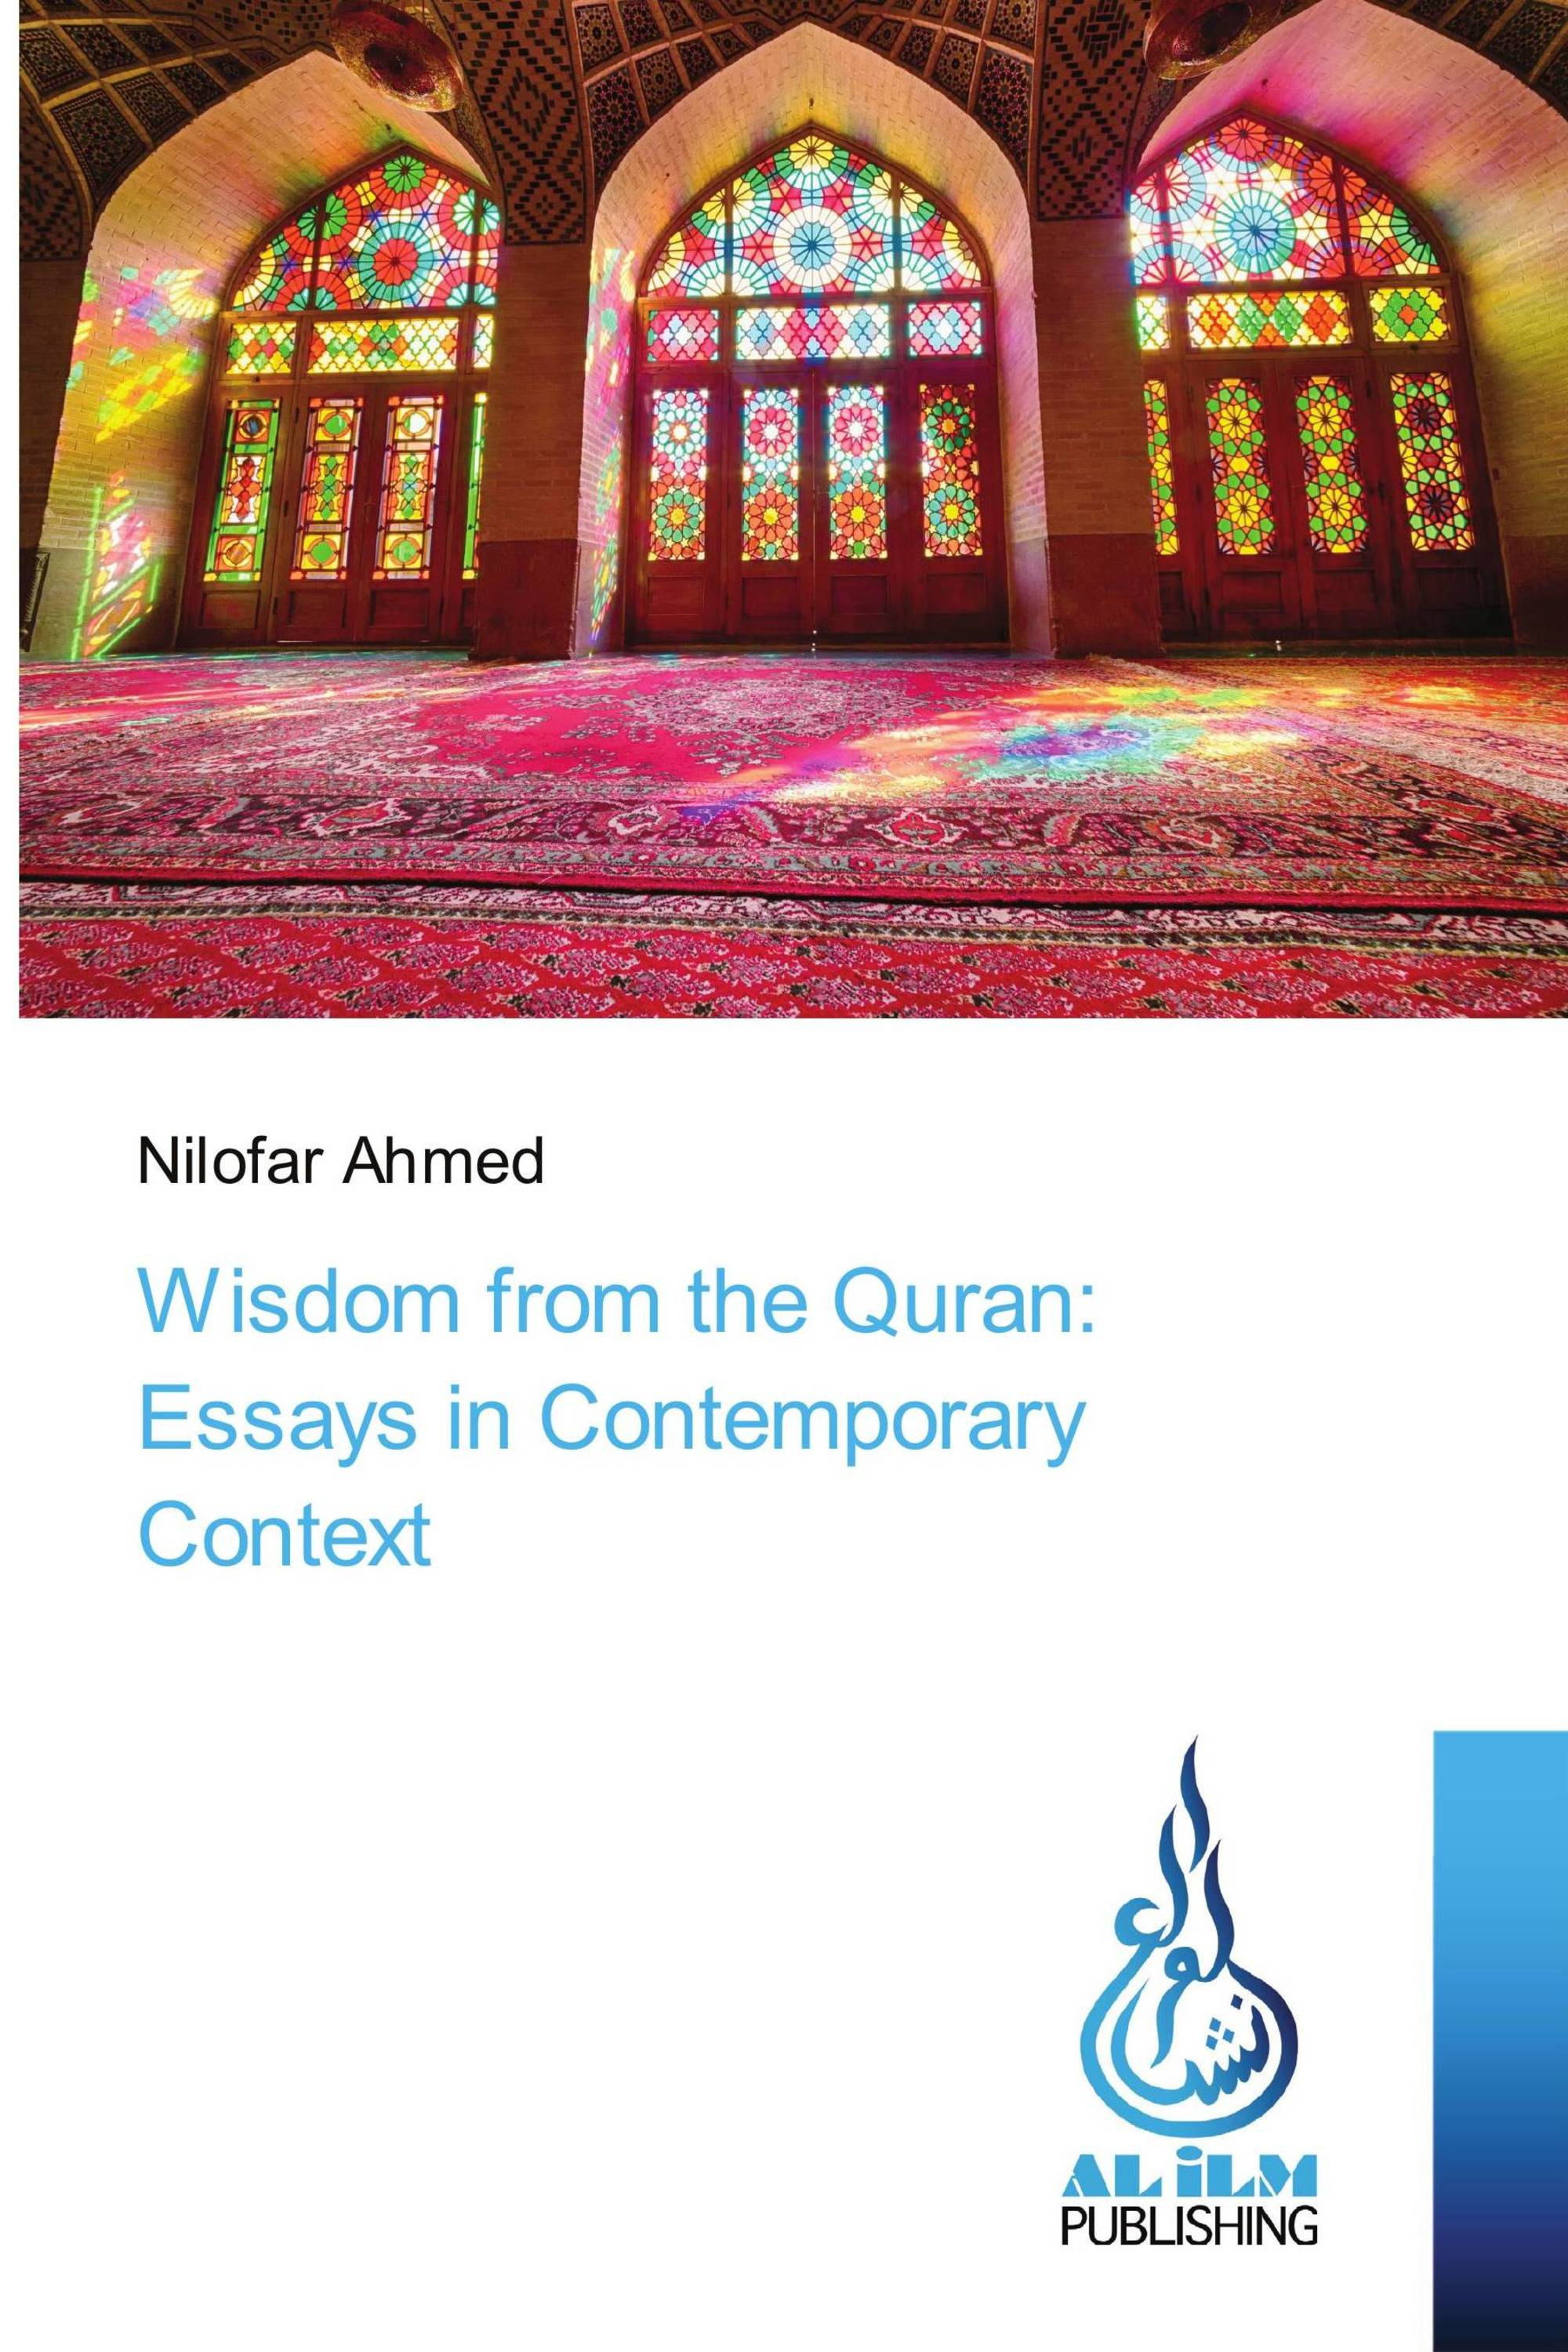 Wisdom from the Quran: Essays in Contemporary Context